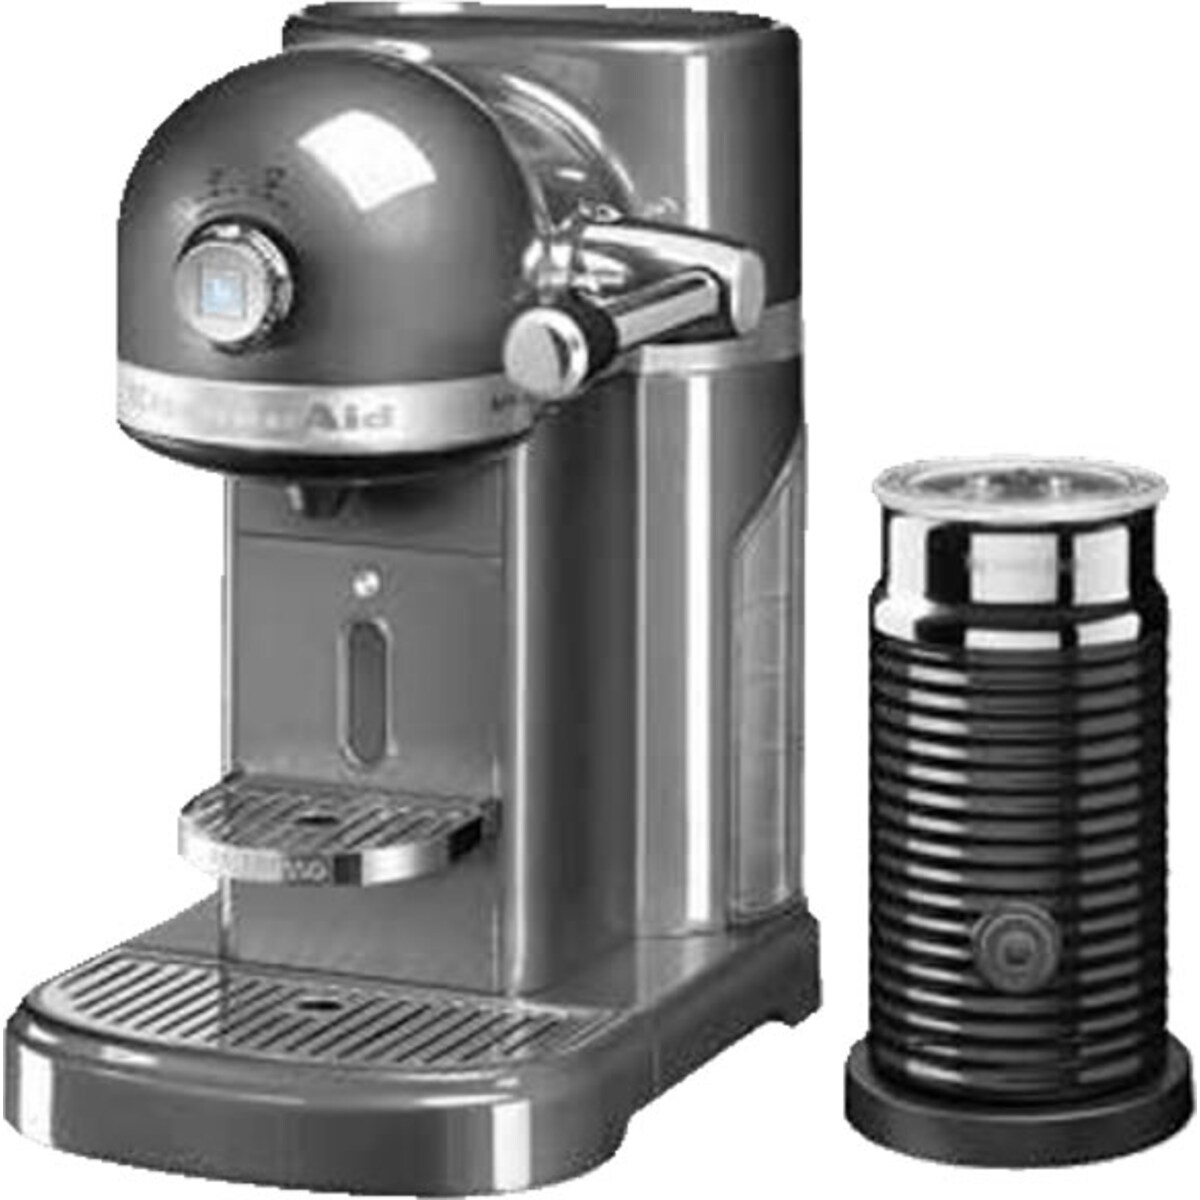 Nespresso Kitchen Aid Medallion Silver със система за мляко